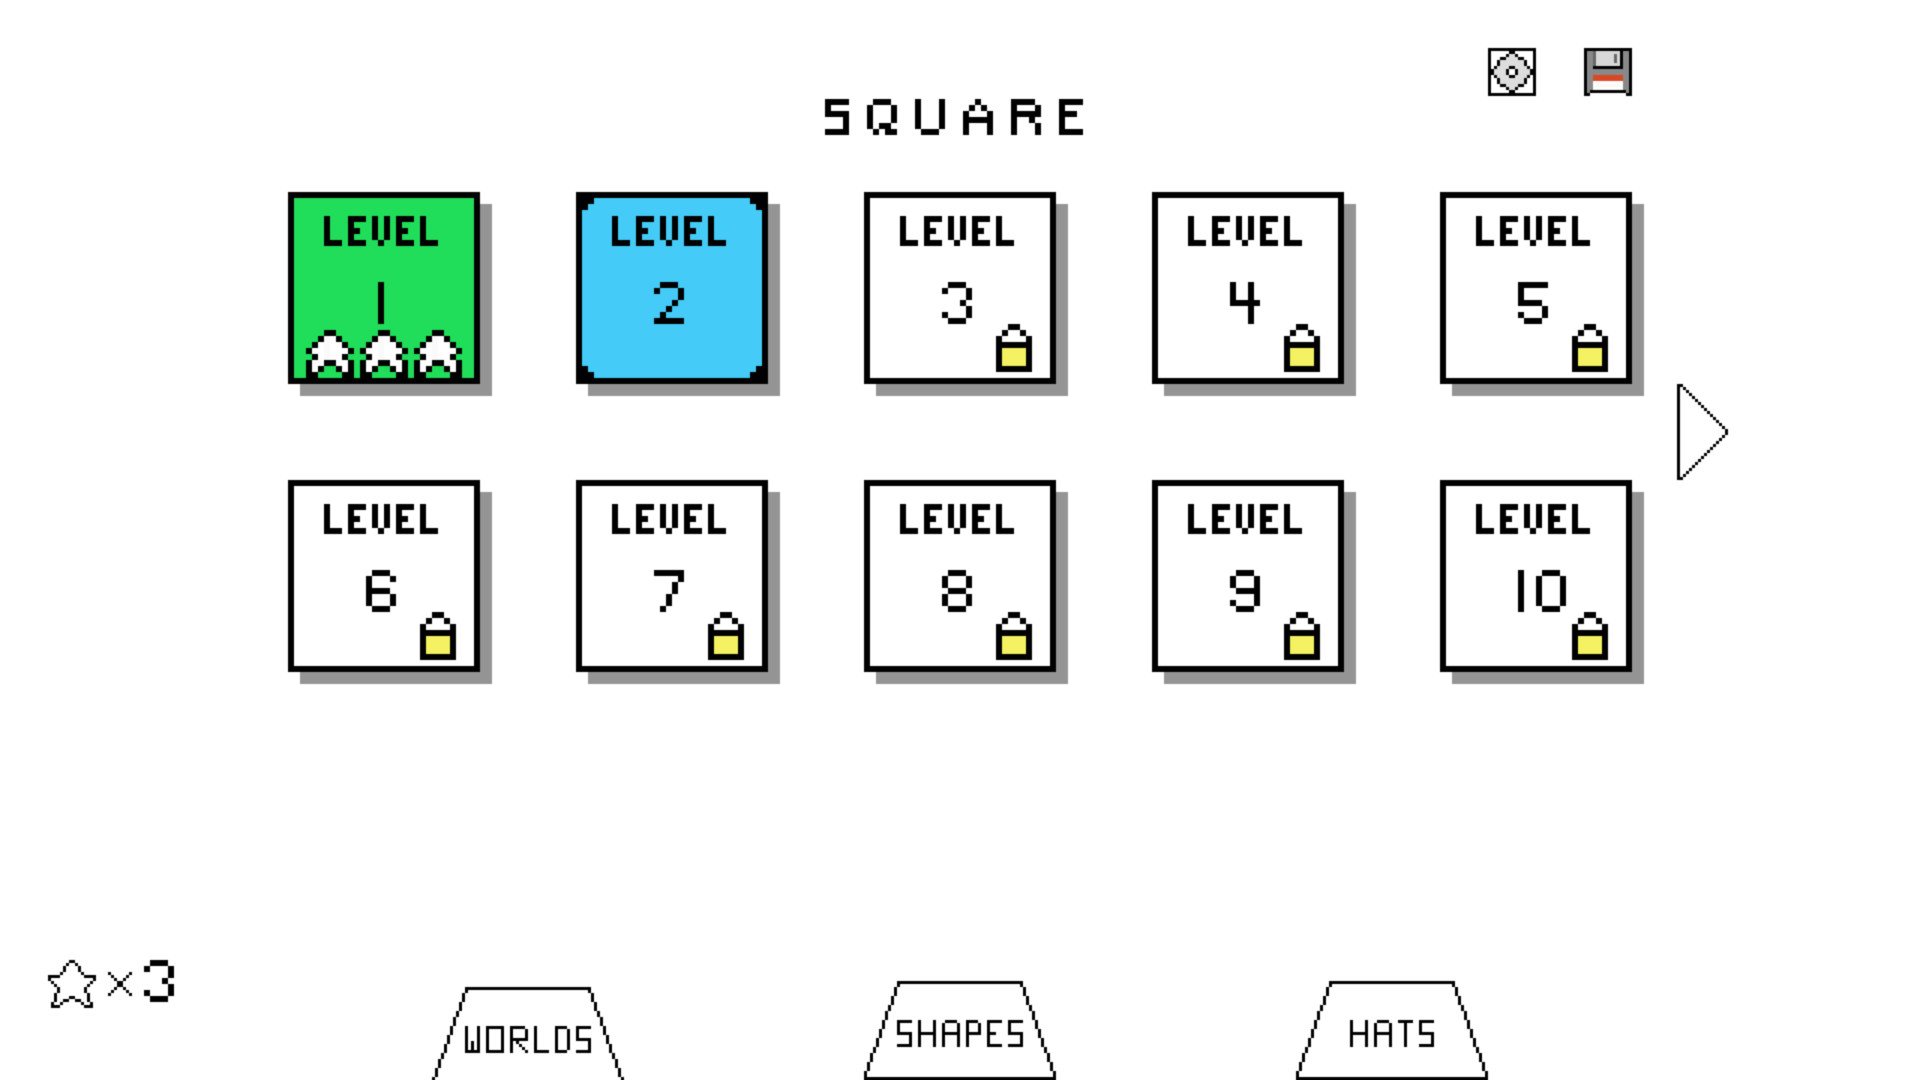 Square Norm screenshot